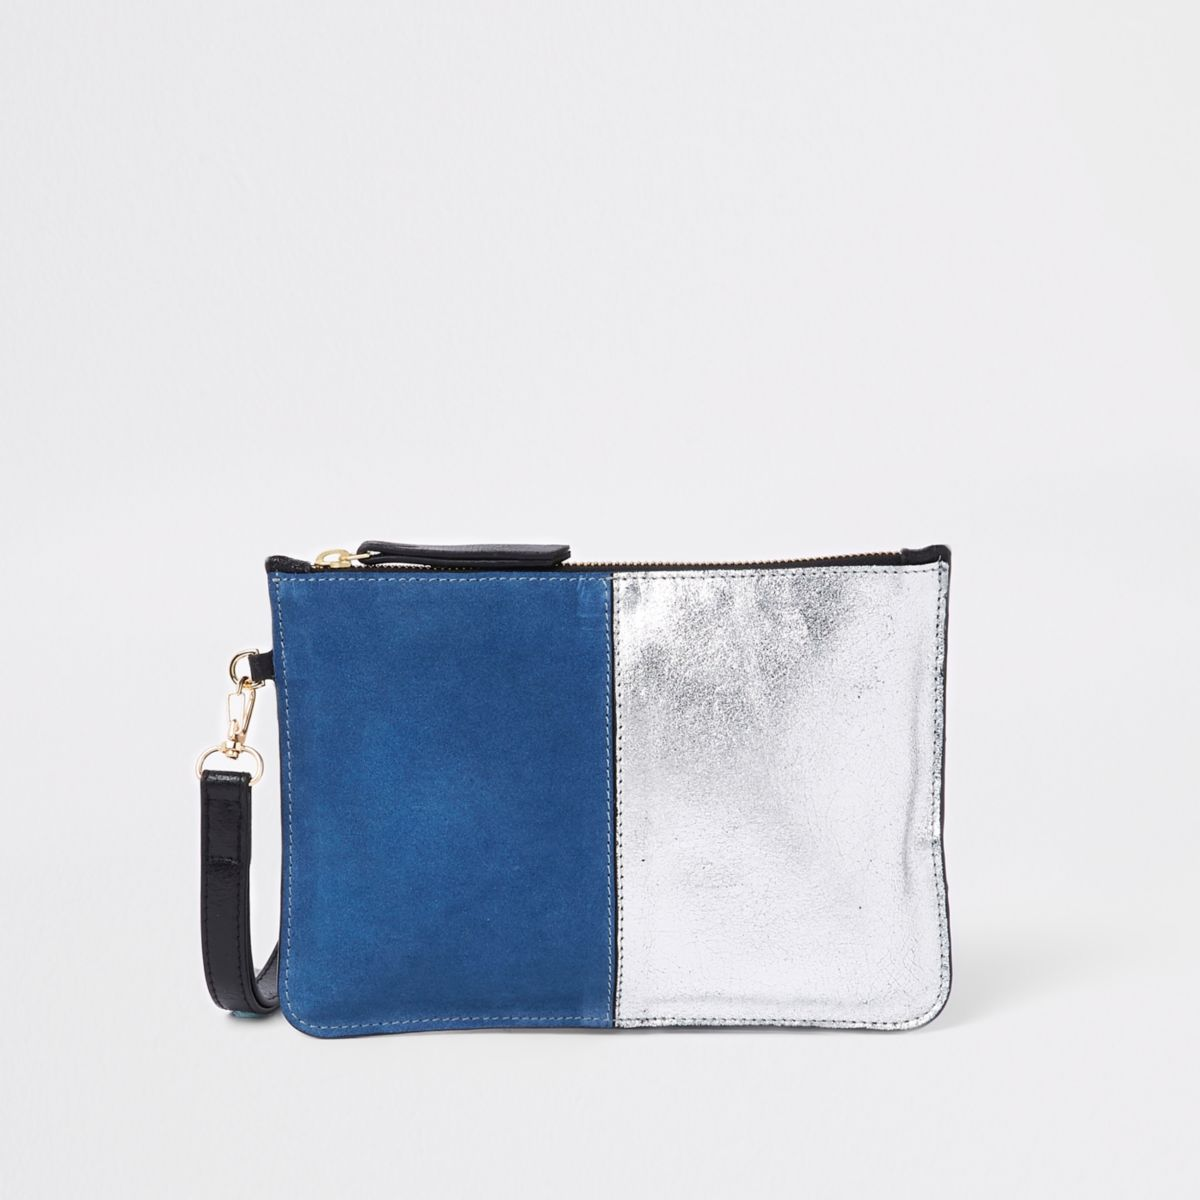 Blue leather pouch clutch bag